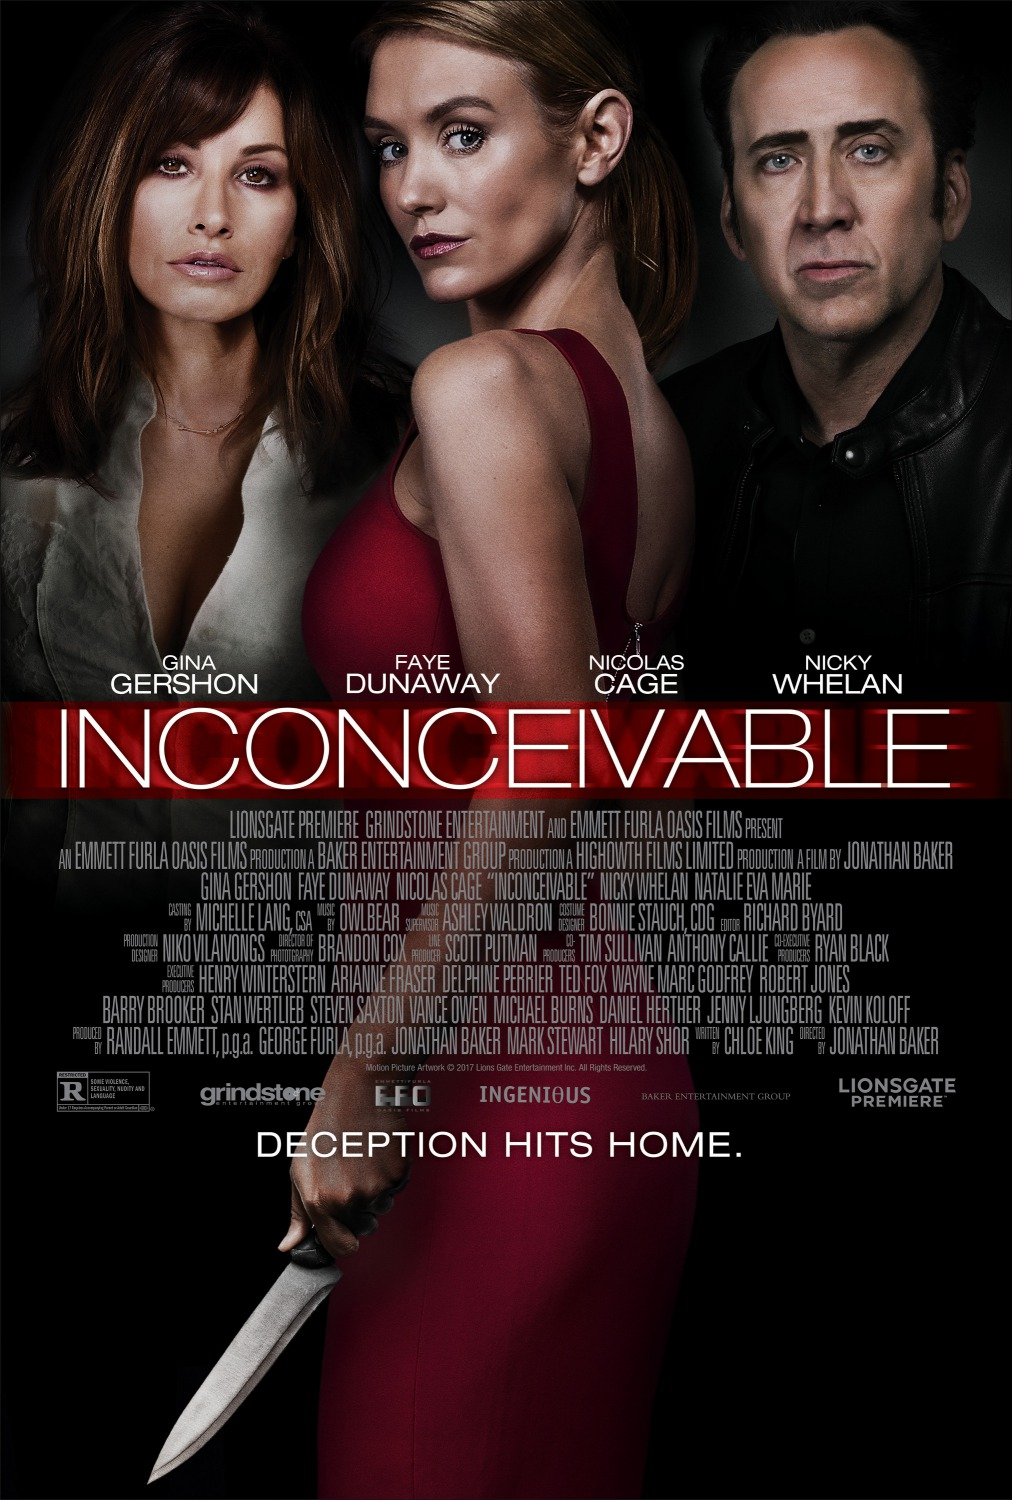 Image result for inconceivable movie poster